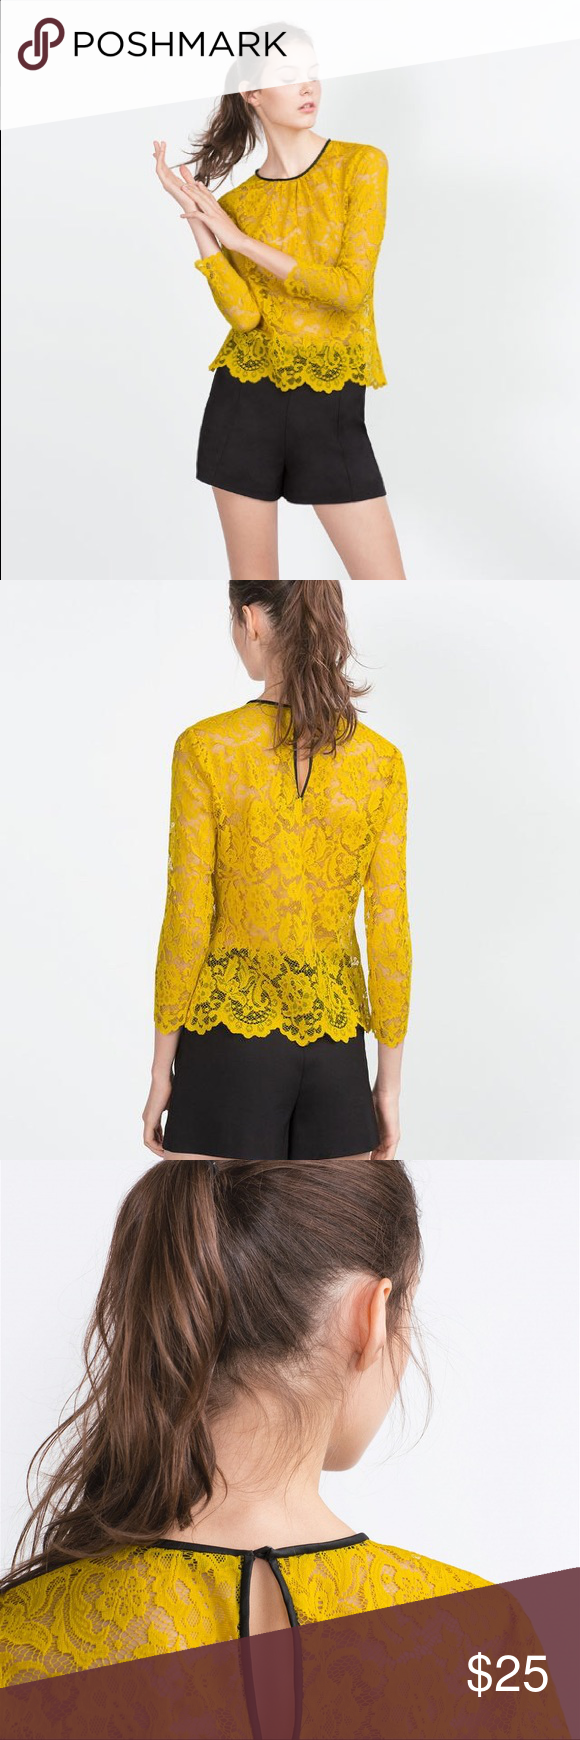 cb3ae389a8df34 ZARA Mustard Lace Top New with tags . Zara Tops Blouses   My Posh ...